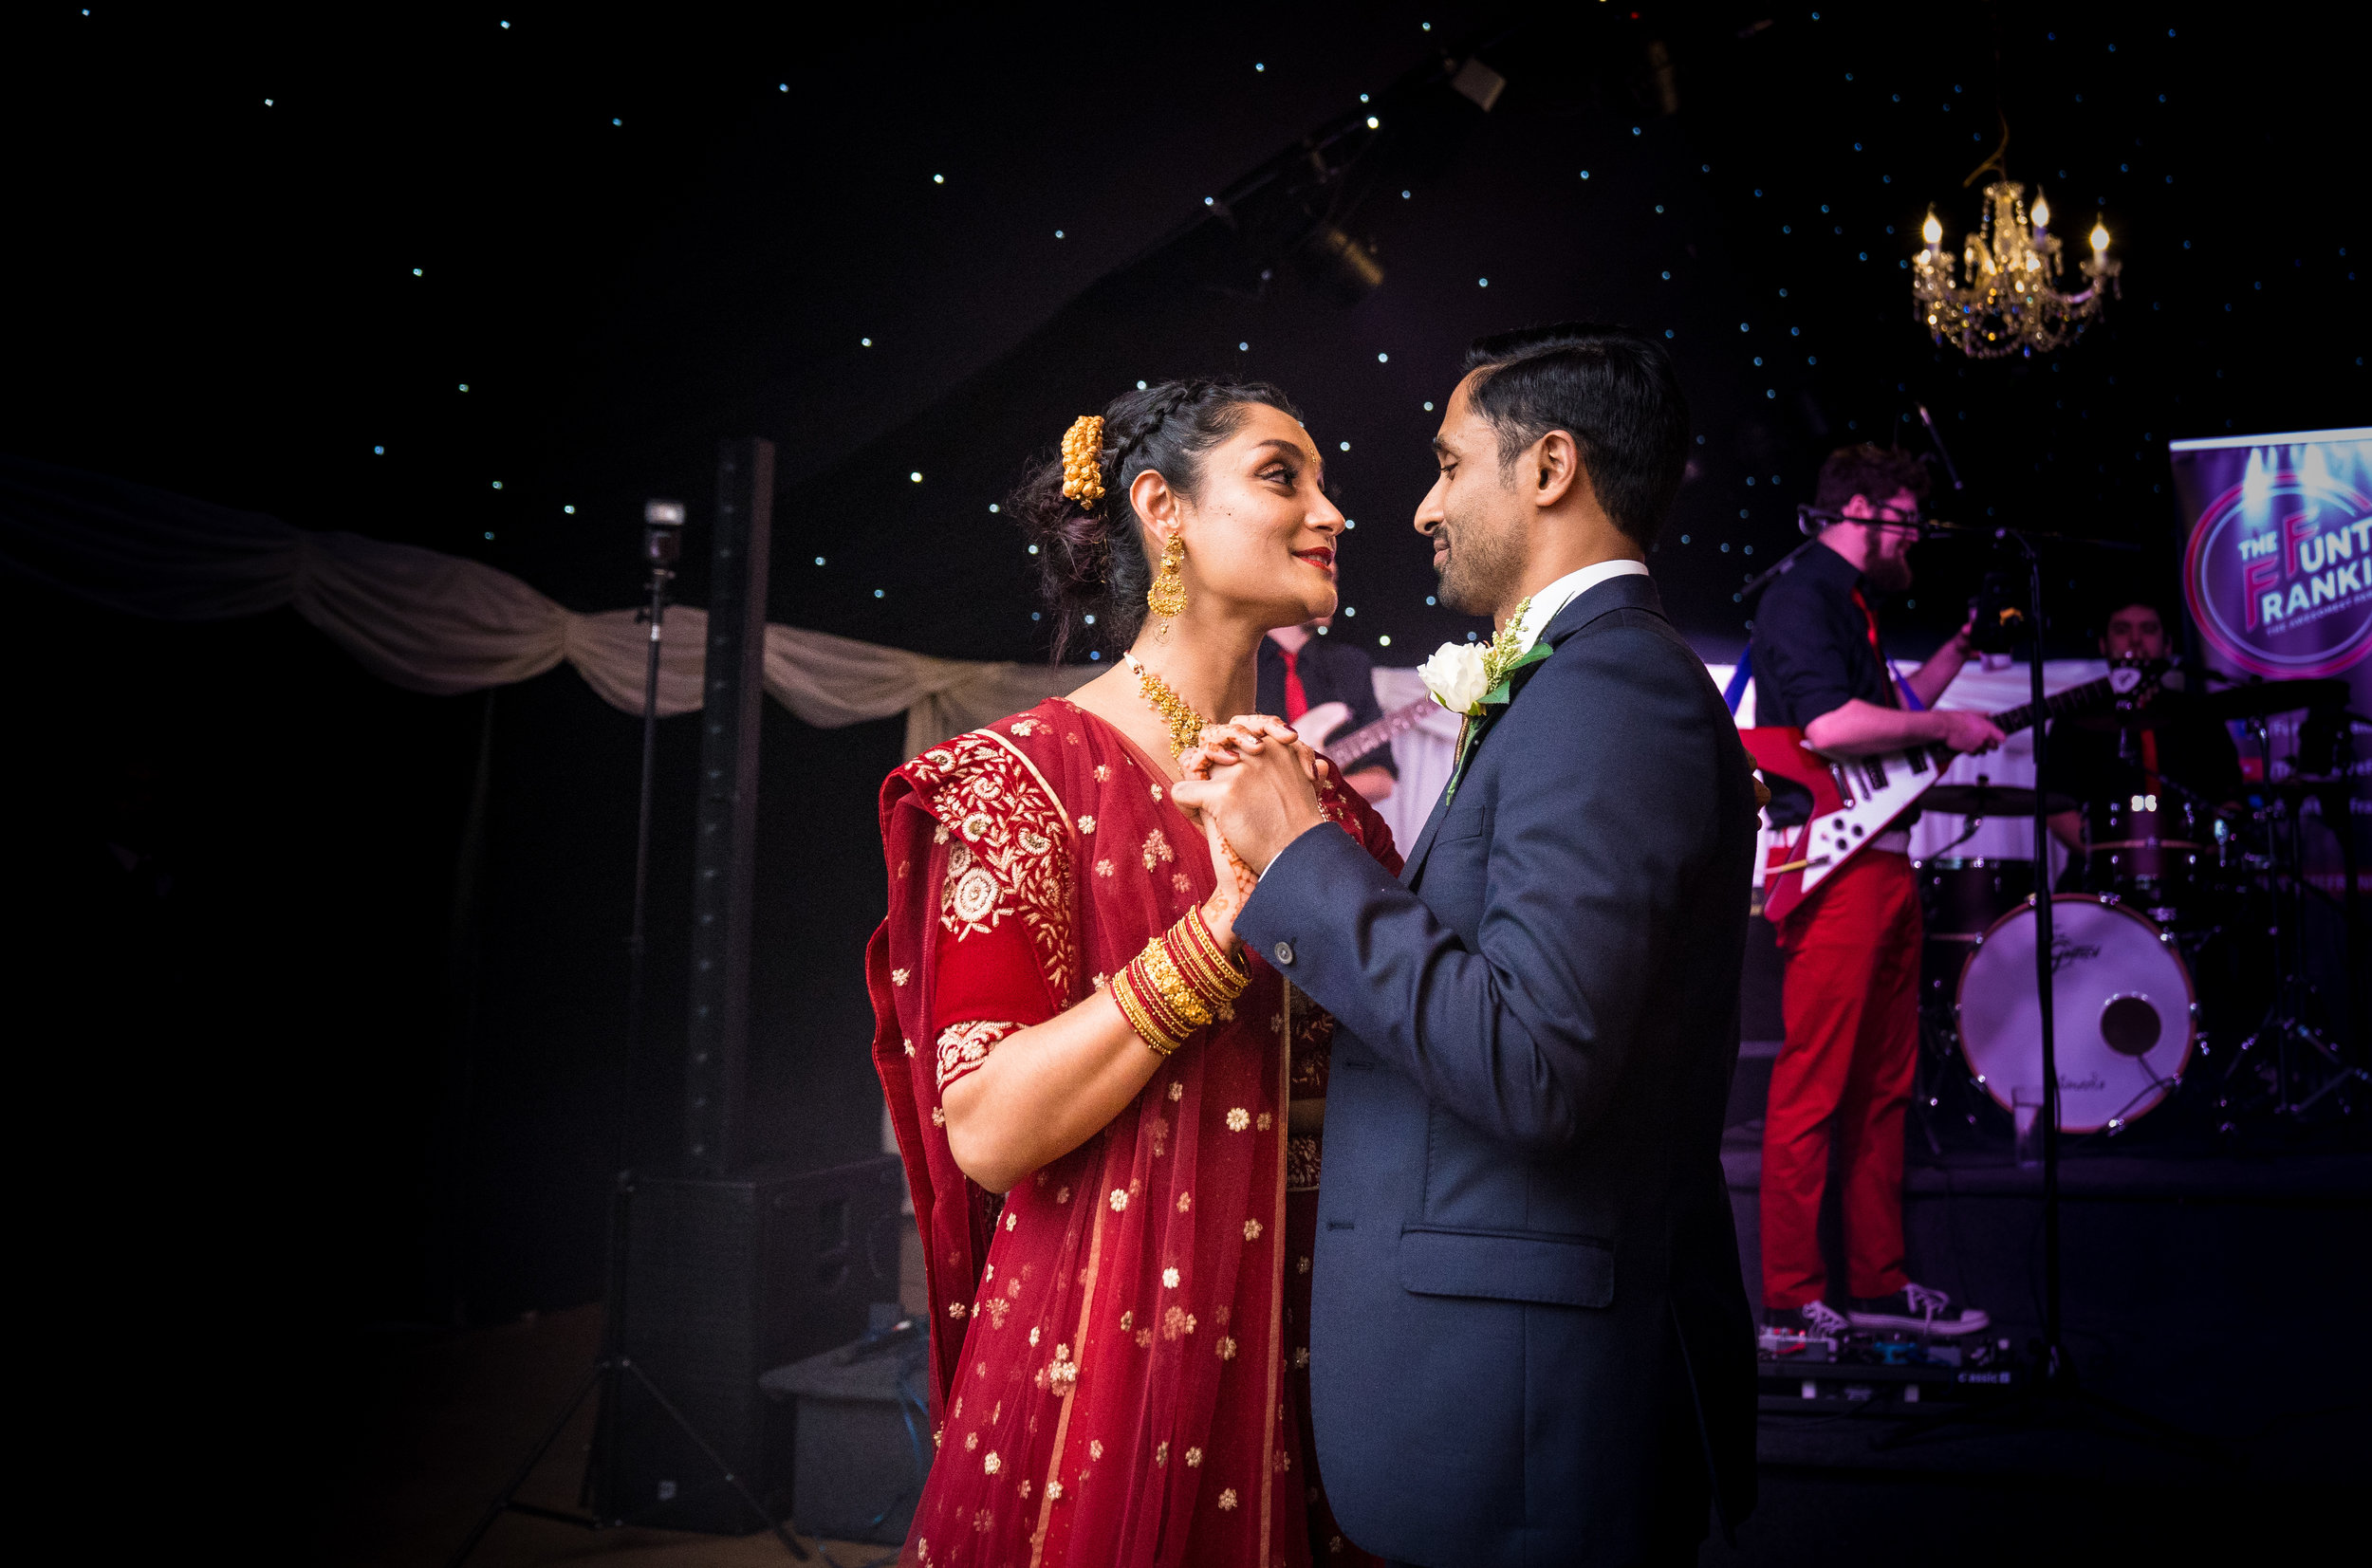 heaton-house-christmas-winter-wedding-photography-videography-manchester-82